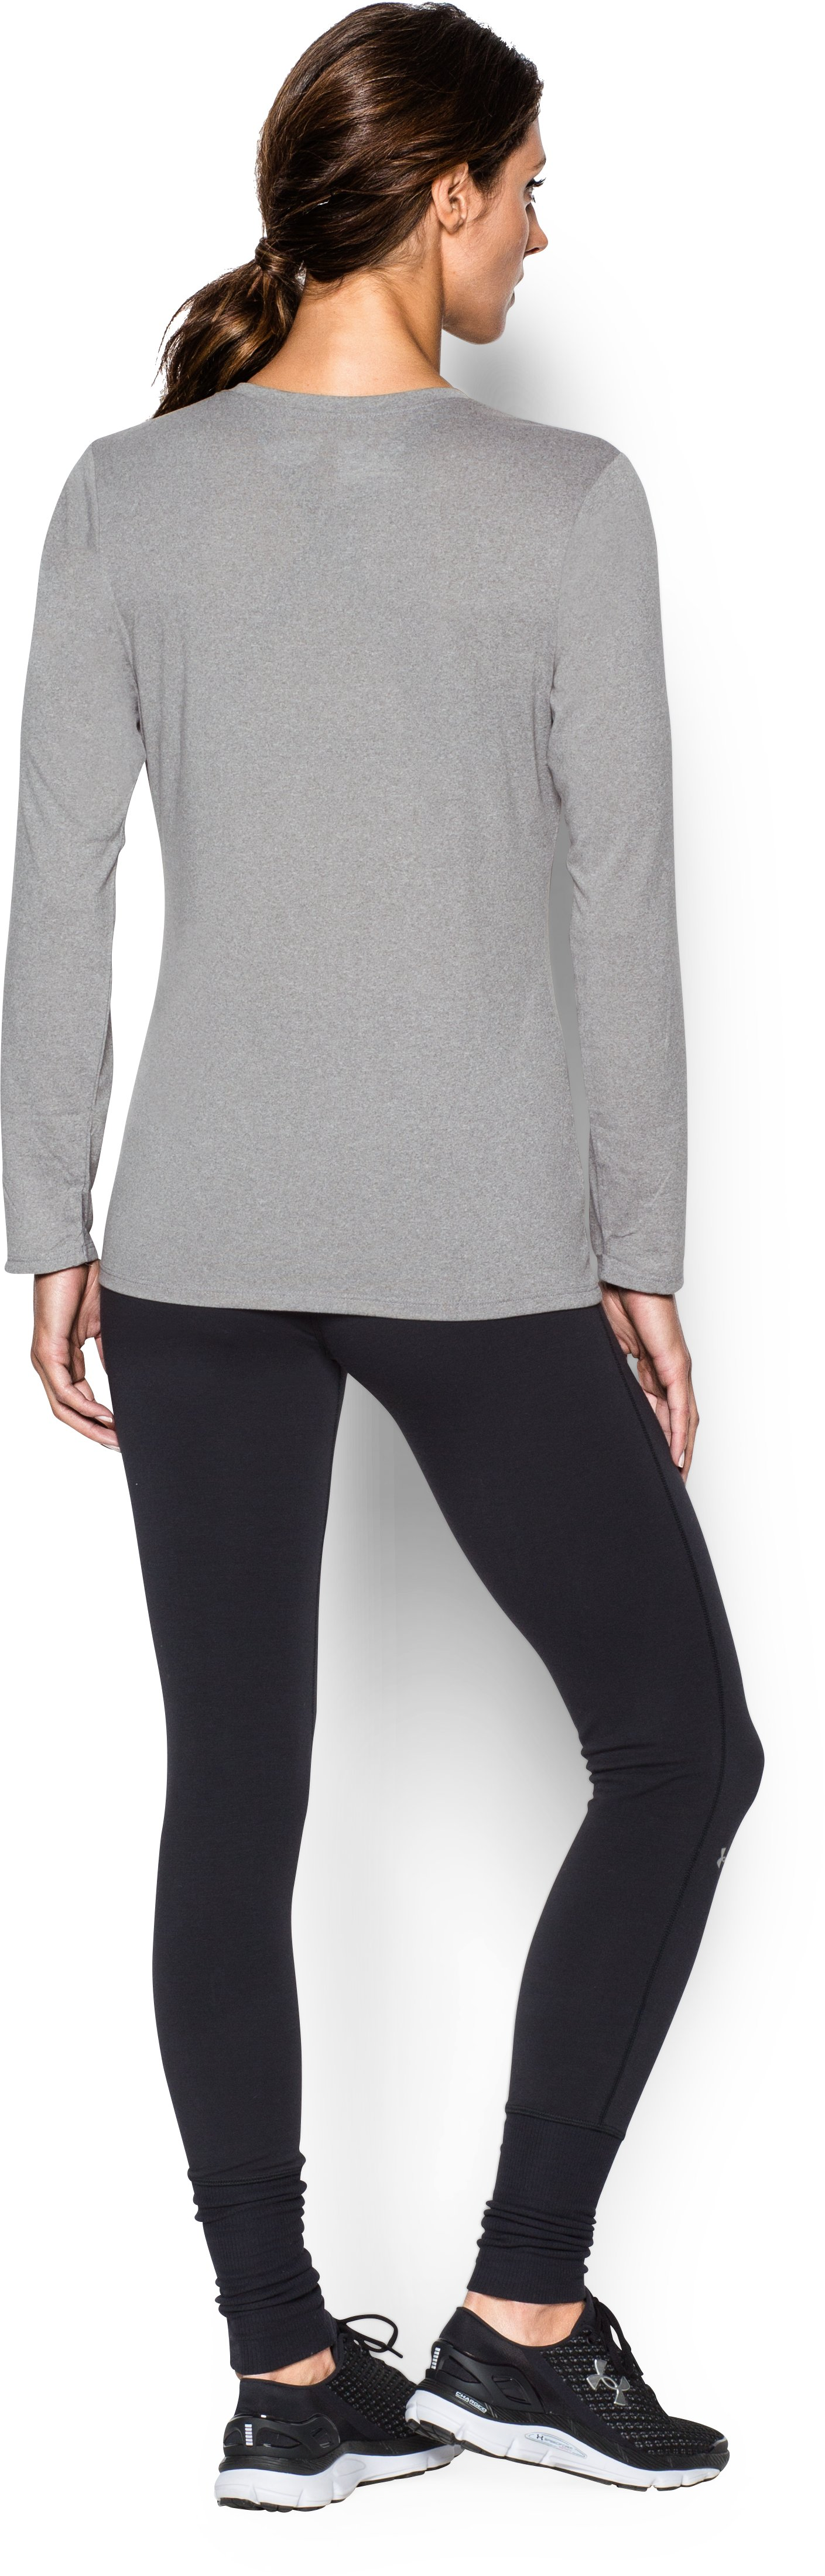 Women's Locker Long Sleeve T-Shirt, True Gray Heather, Back